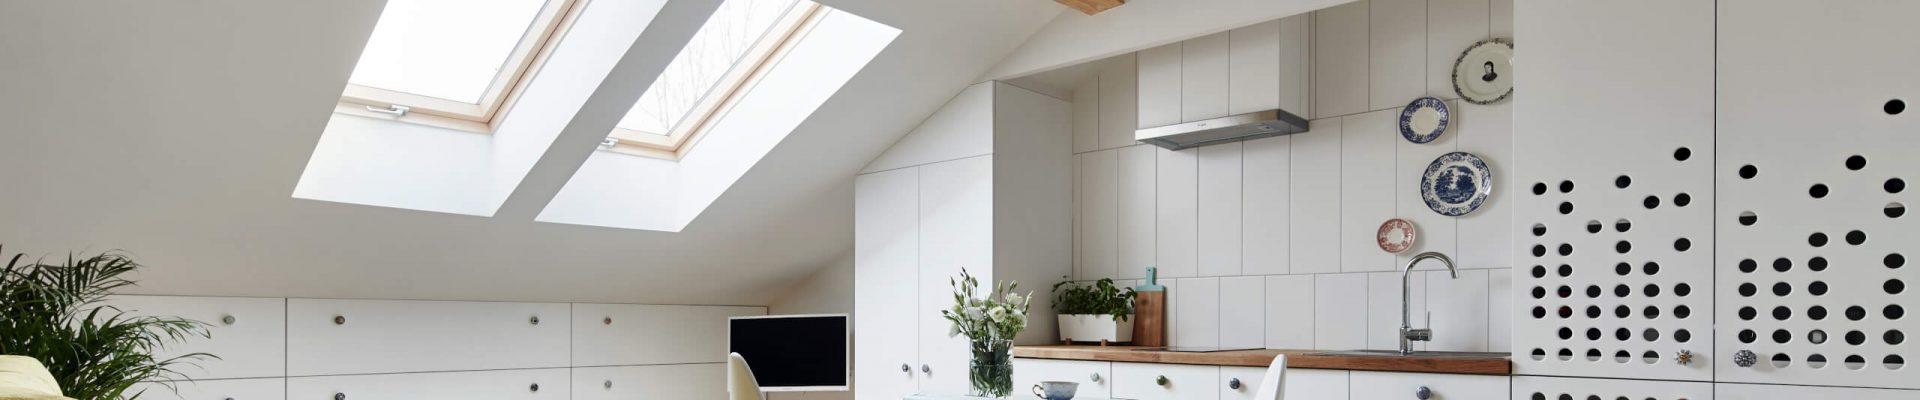 kitchen for rent cool appliances declutter your tips to achieve a minimal liv decluttering